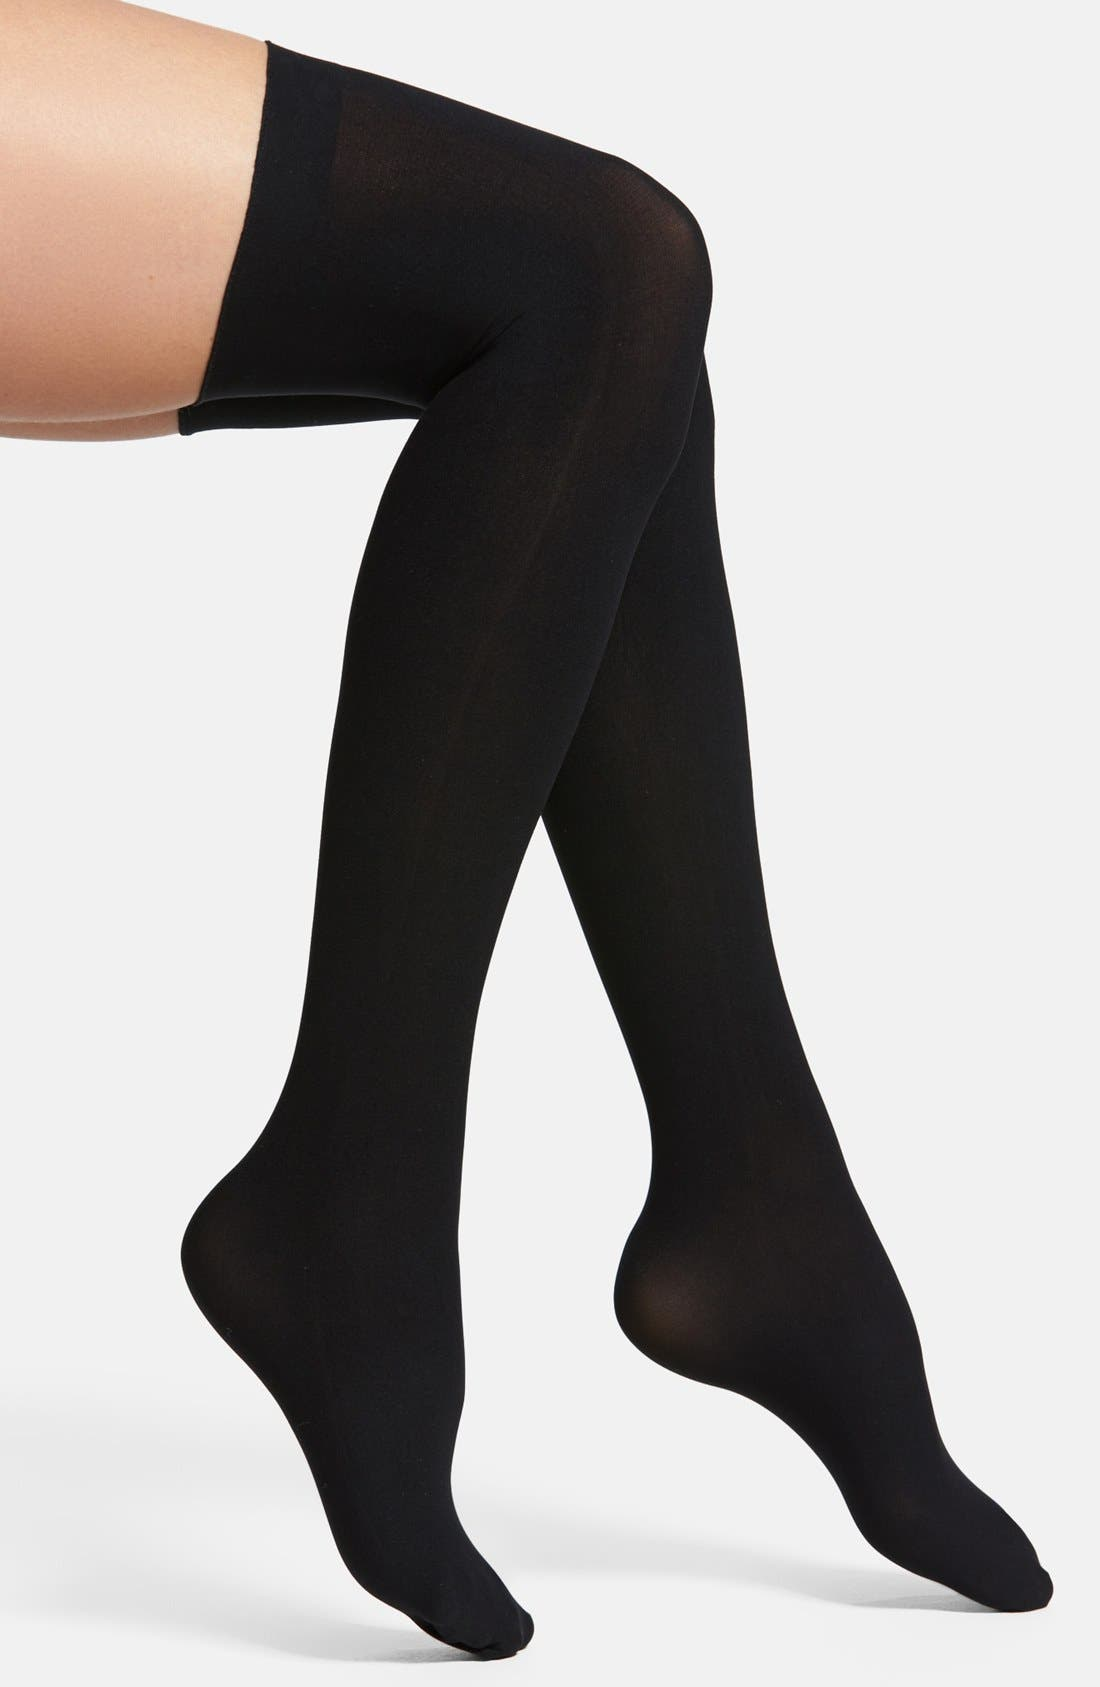 Looking for some fun and stylish socks to add to your look? Yandy is the place for the best selection of socks, including thigh high socks, boot socks, knee high socks, cool socks, and crazy socks!